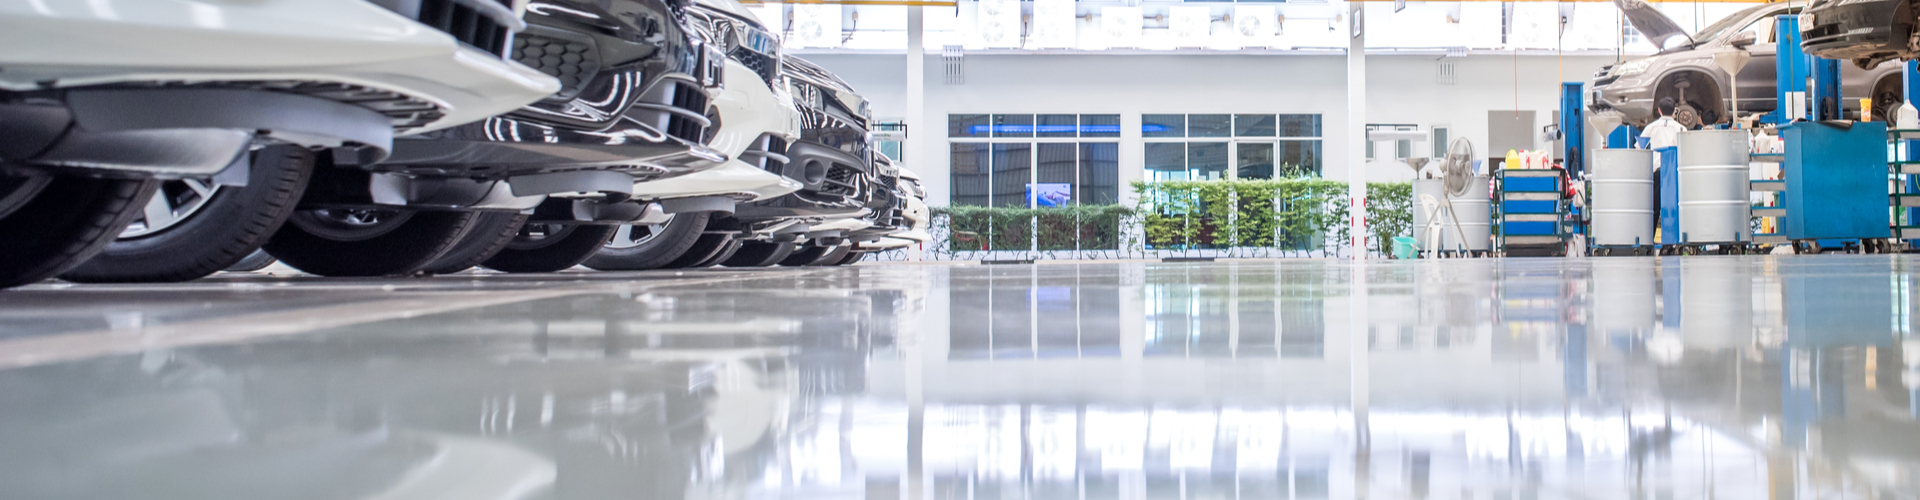 Use Industrial Resin Flooring for a Hazard-Free Environment